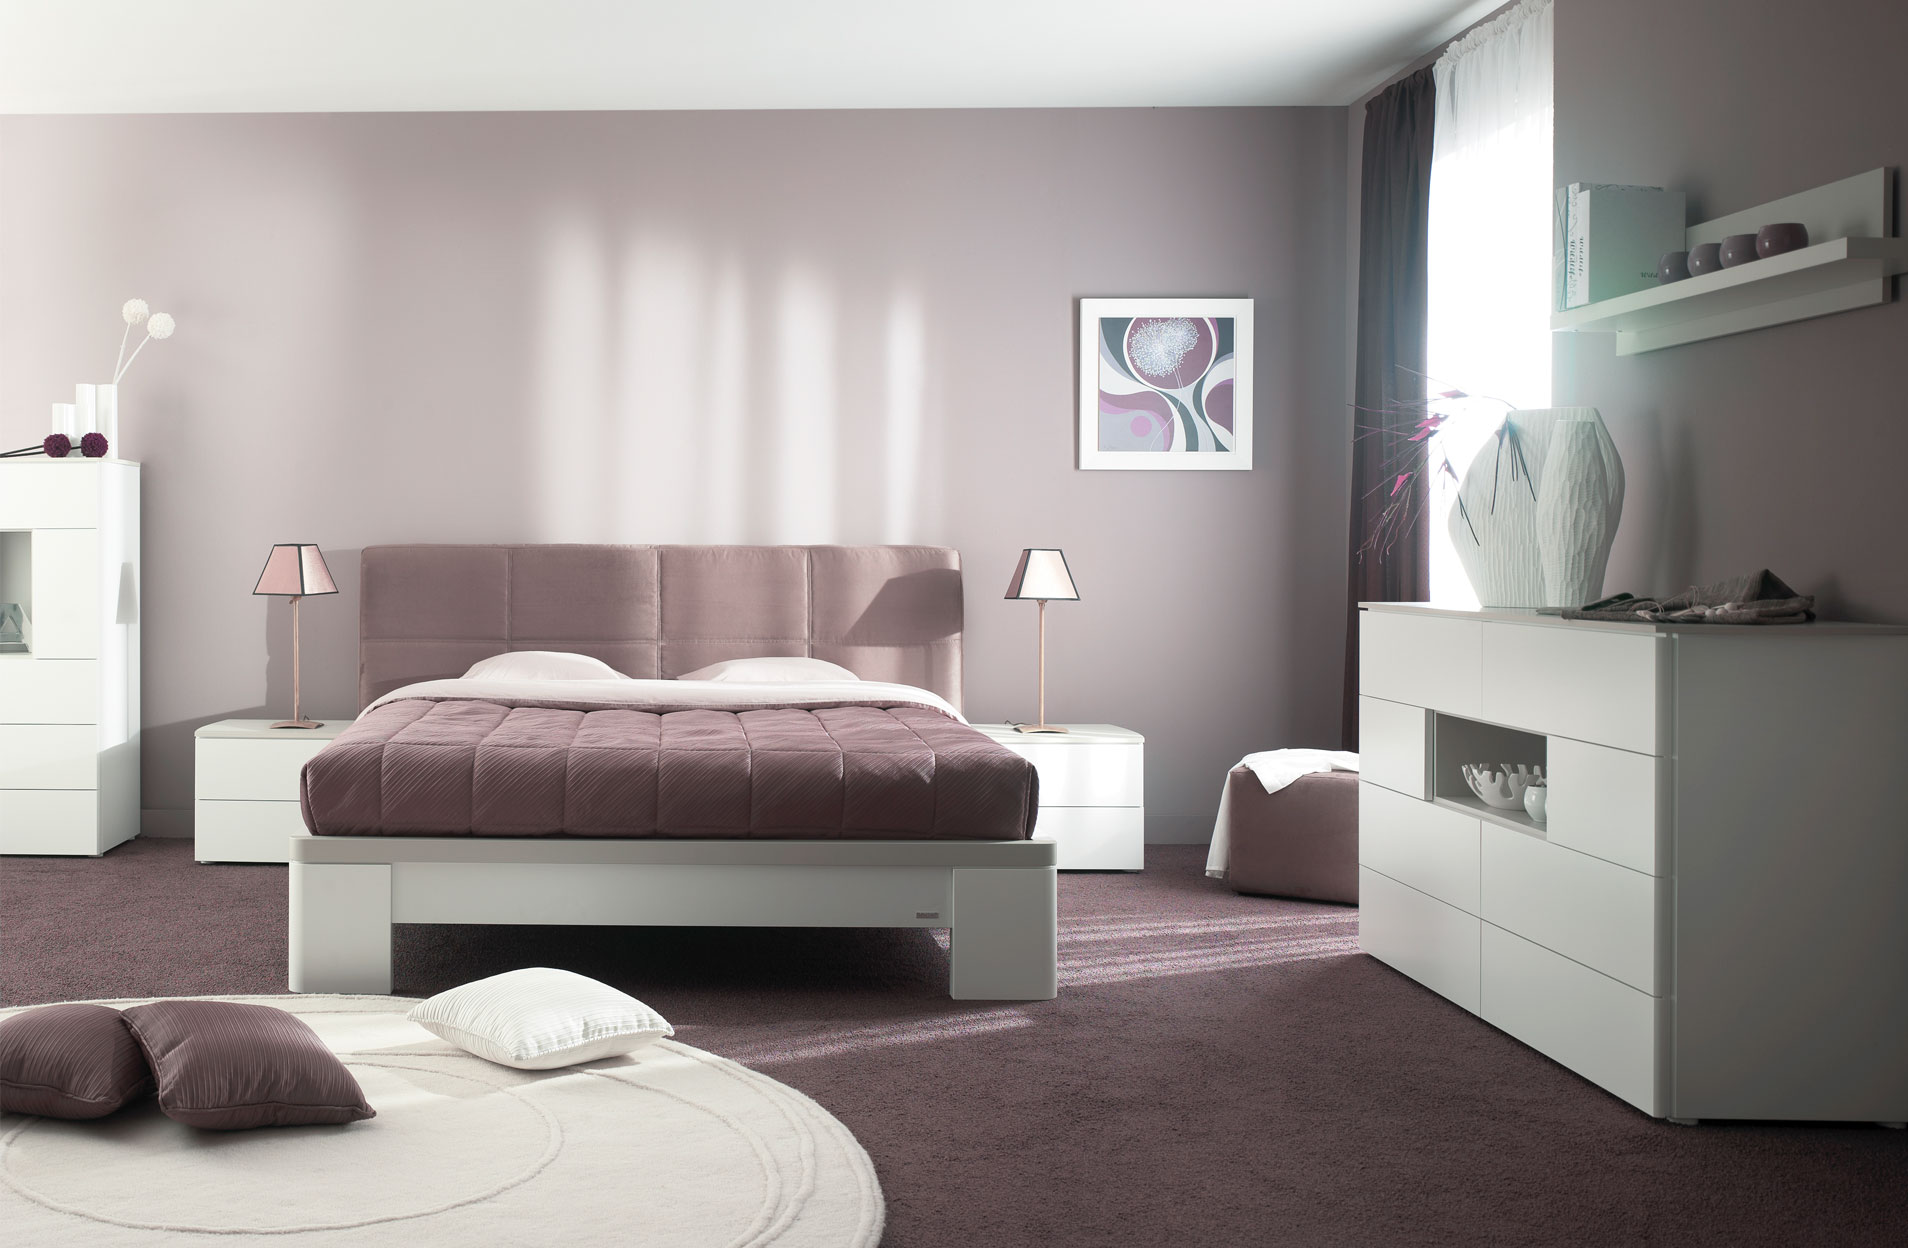 Inspiration d coration de chambre contemporaine gautier opalia for Deco chambre adulte contemporaine